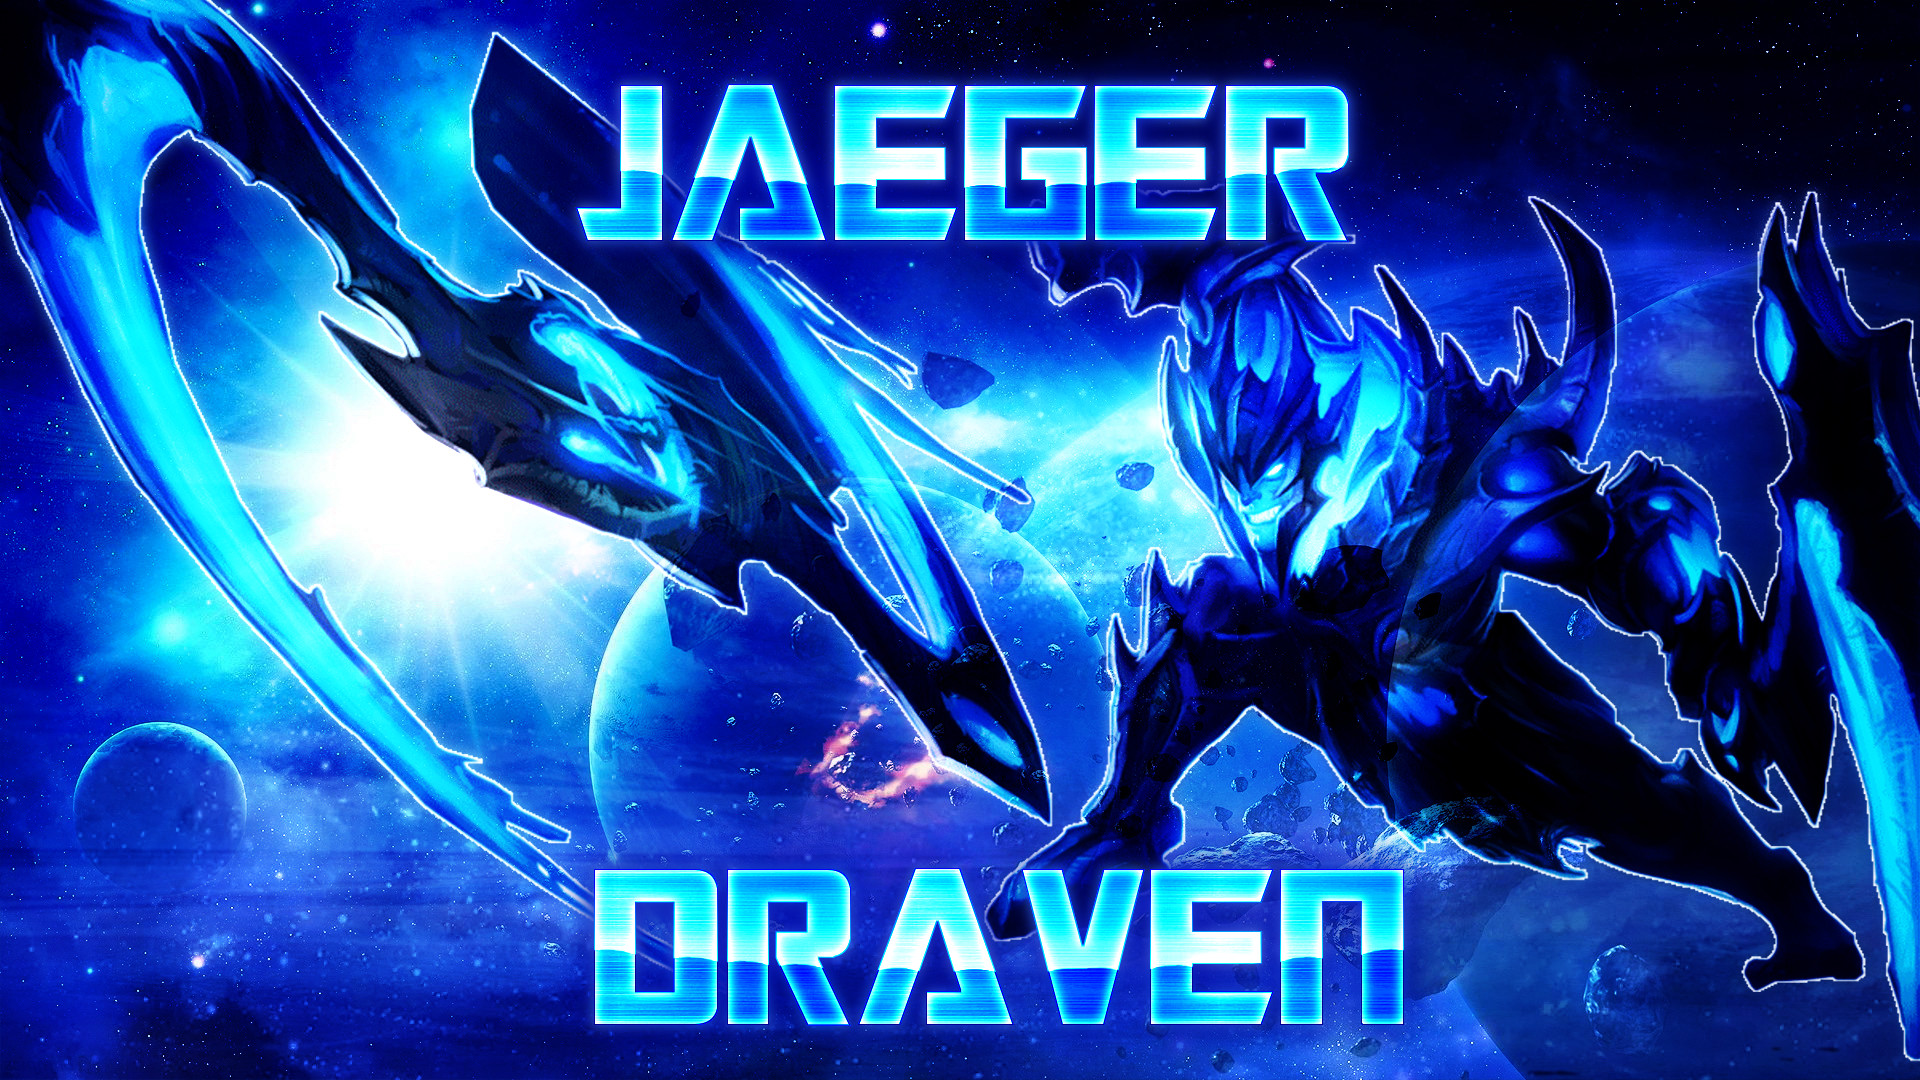 1920x1080 Jaeger Draven Wallpaper by nestroix Jaeger Draven Wallpaper by nestroix